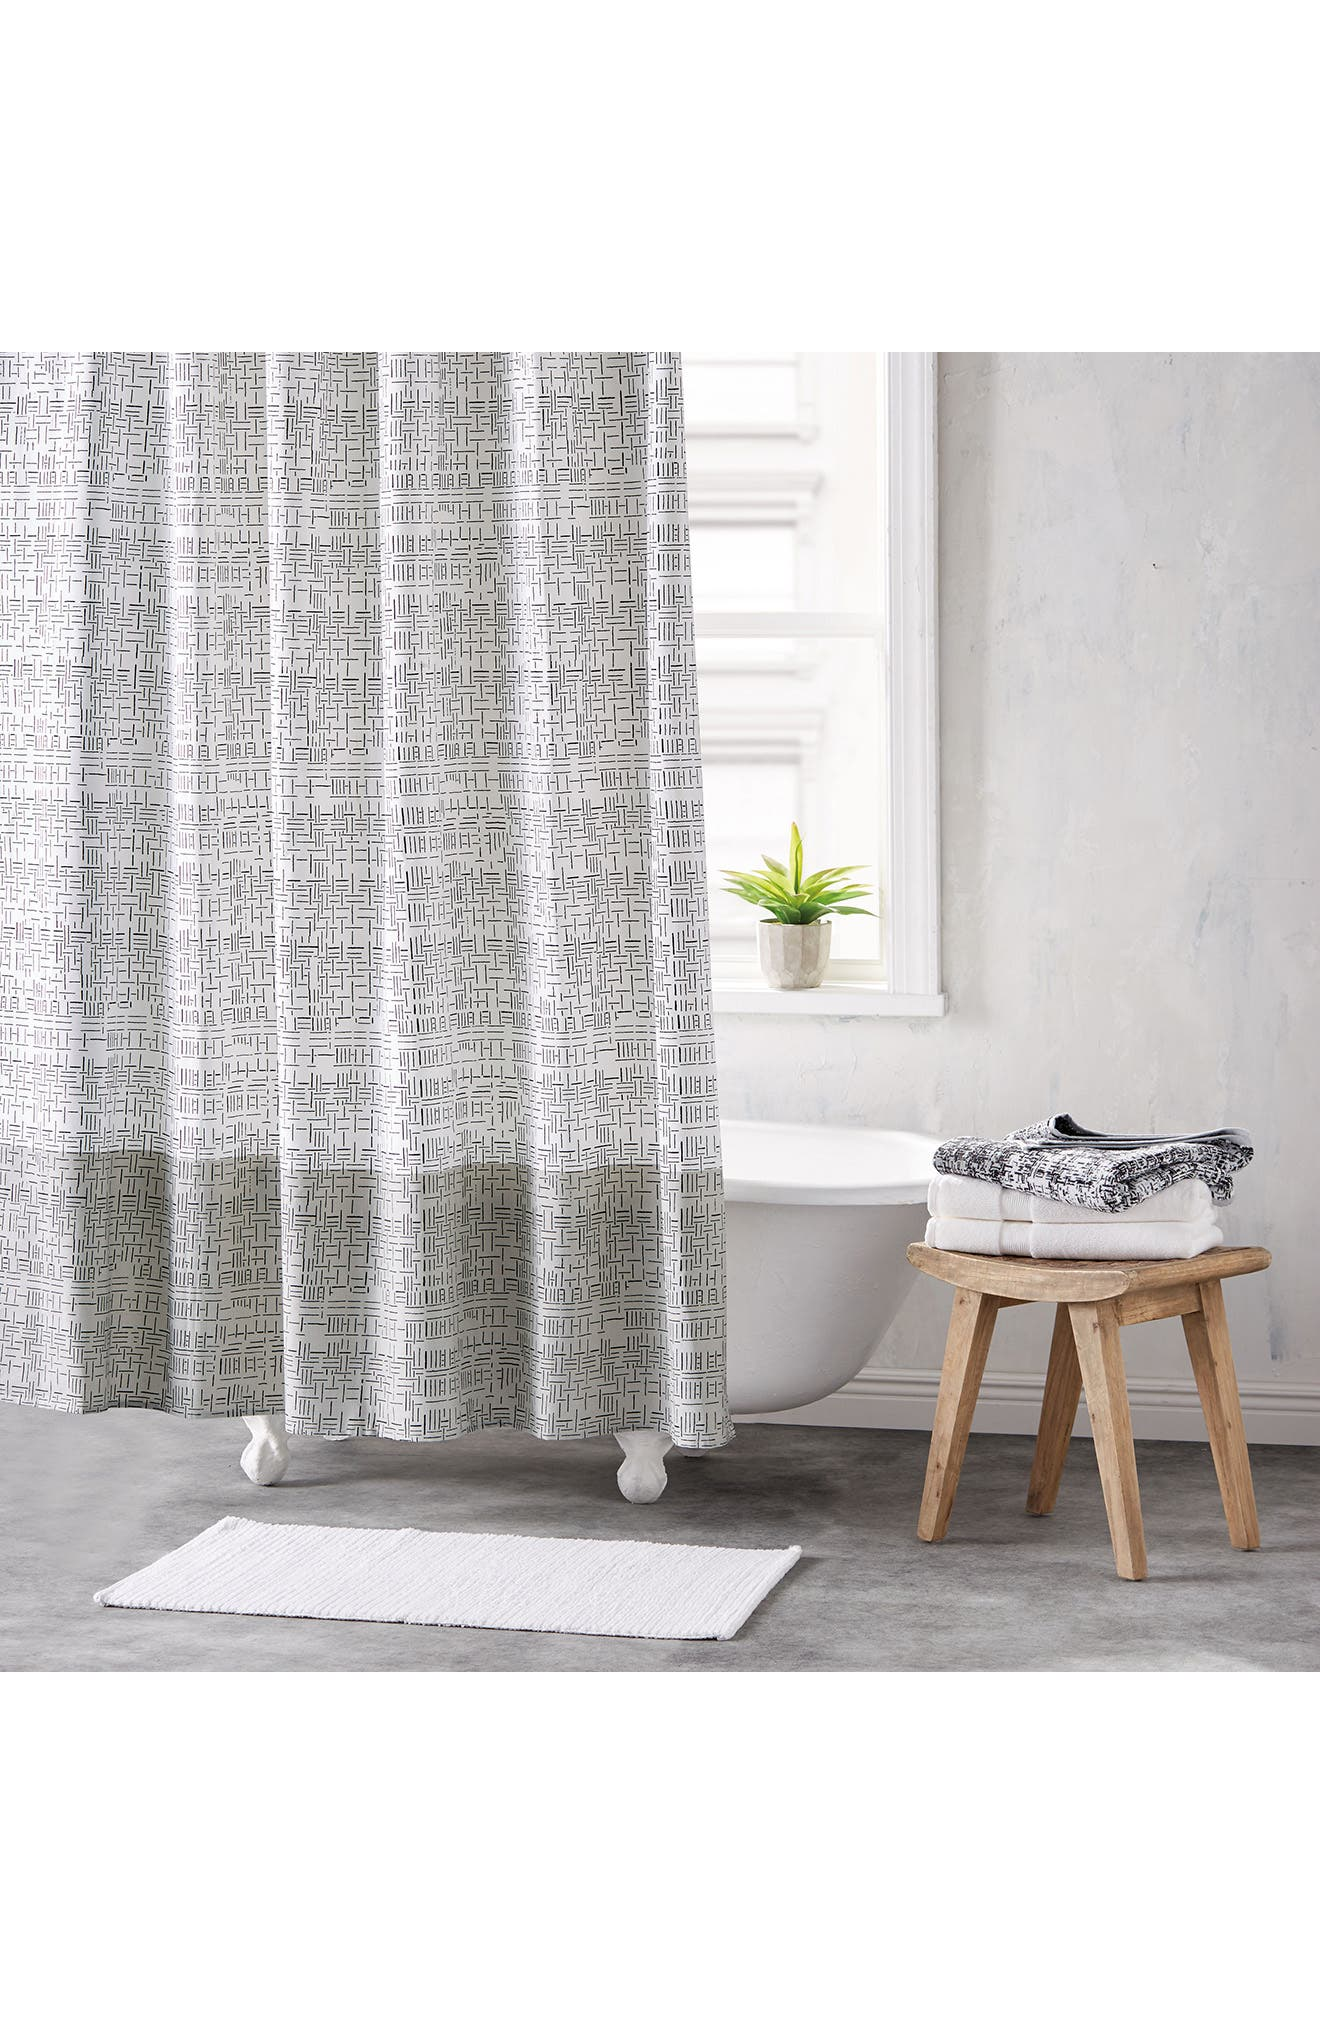 ... Is Not A Challenging Matter Your Sincerity Enjoy The Proper Way To  Obtain Creative Ideas, And This Also Nordstrom Shower Curtains Graphic  Collection Can ...